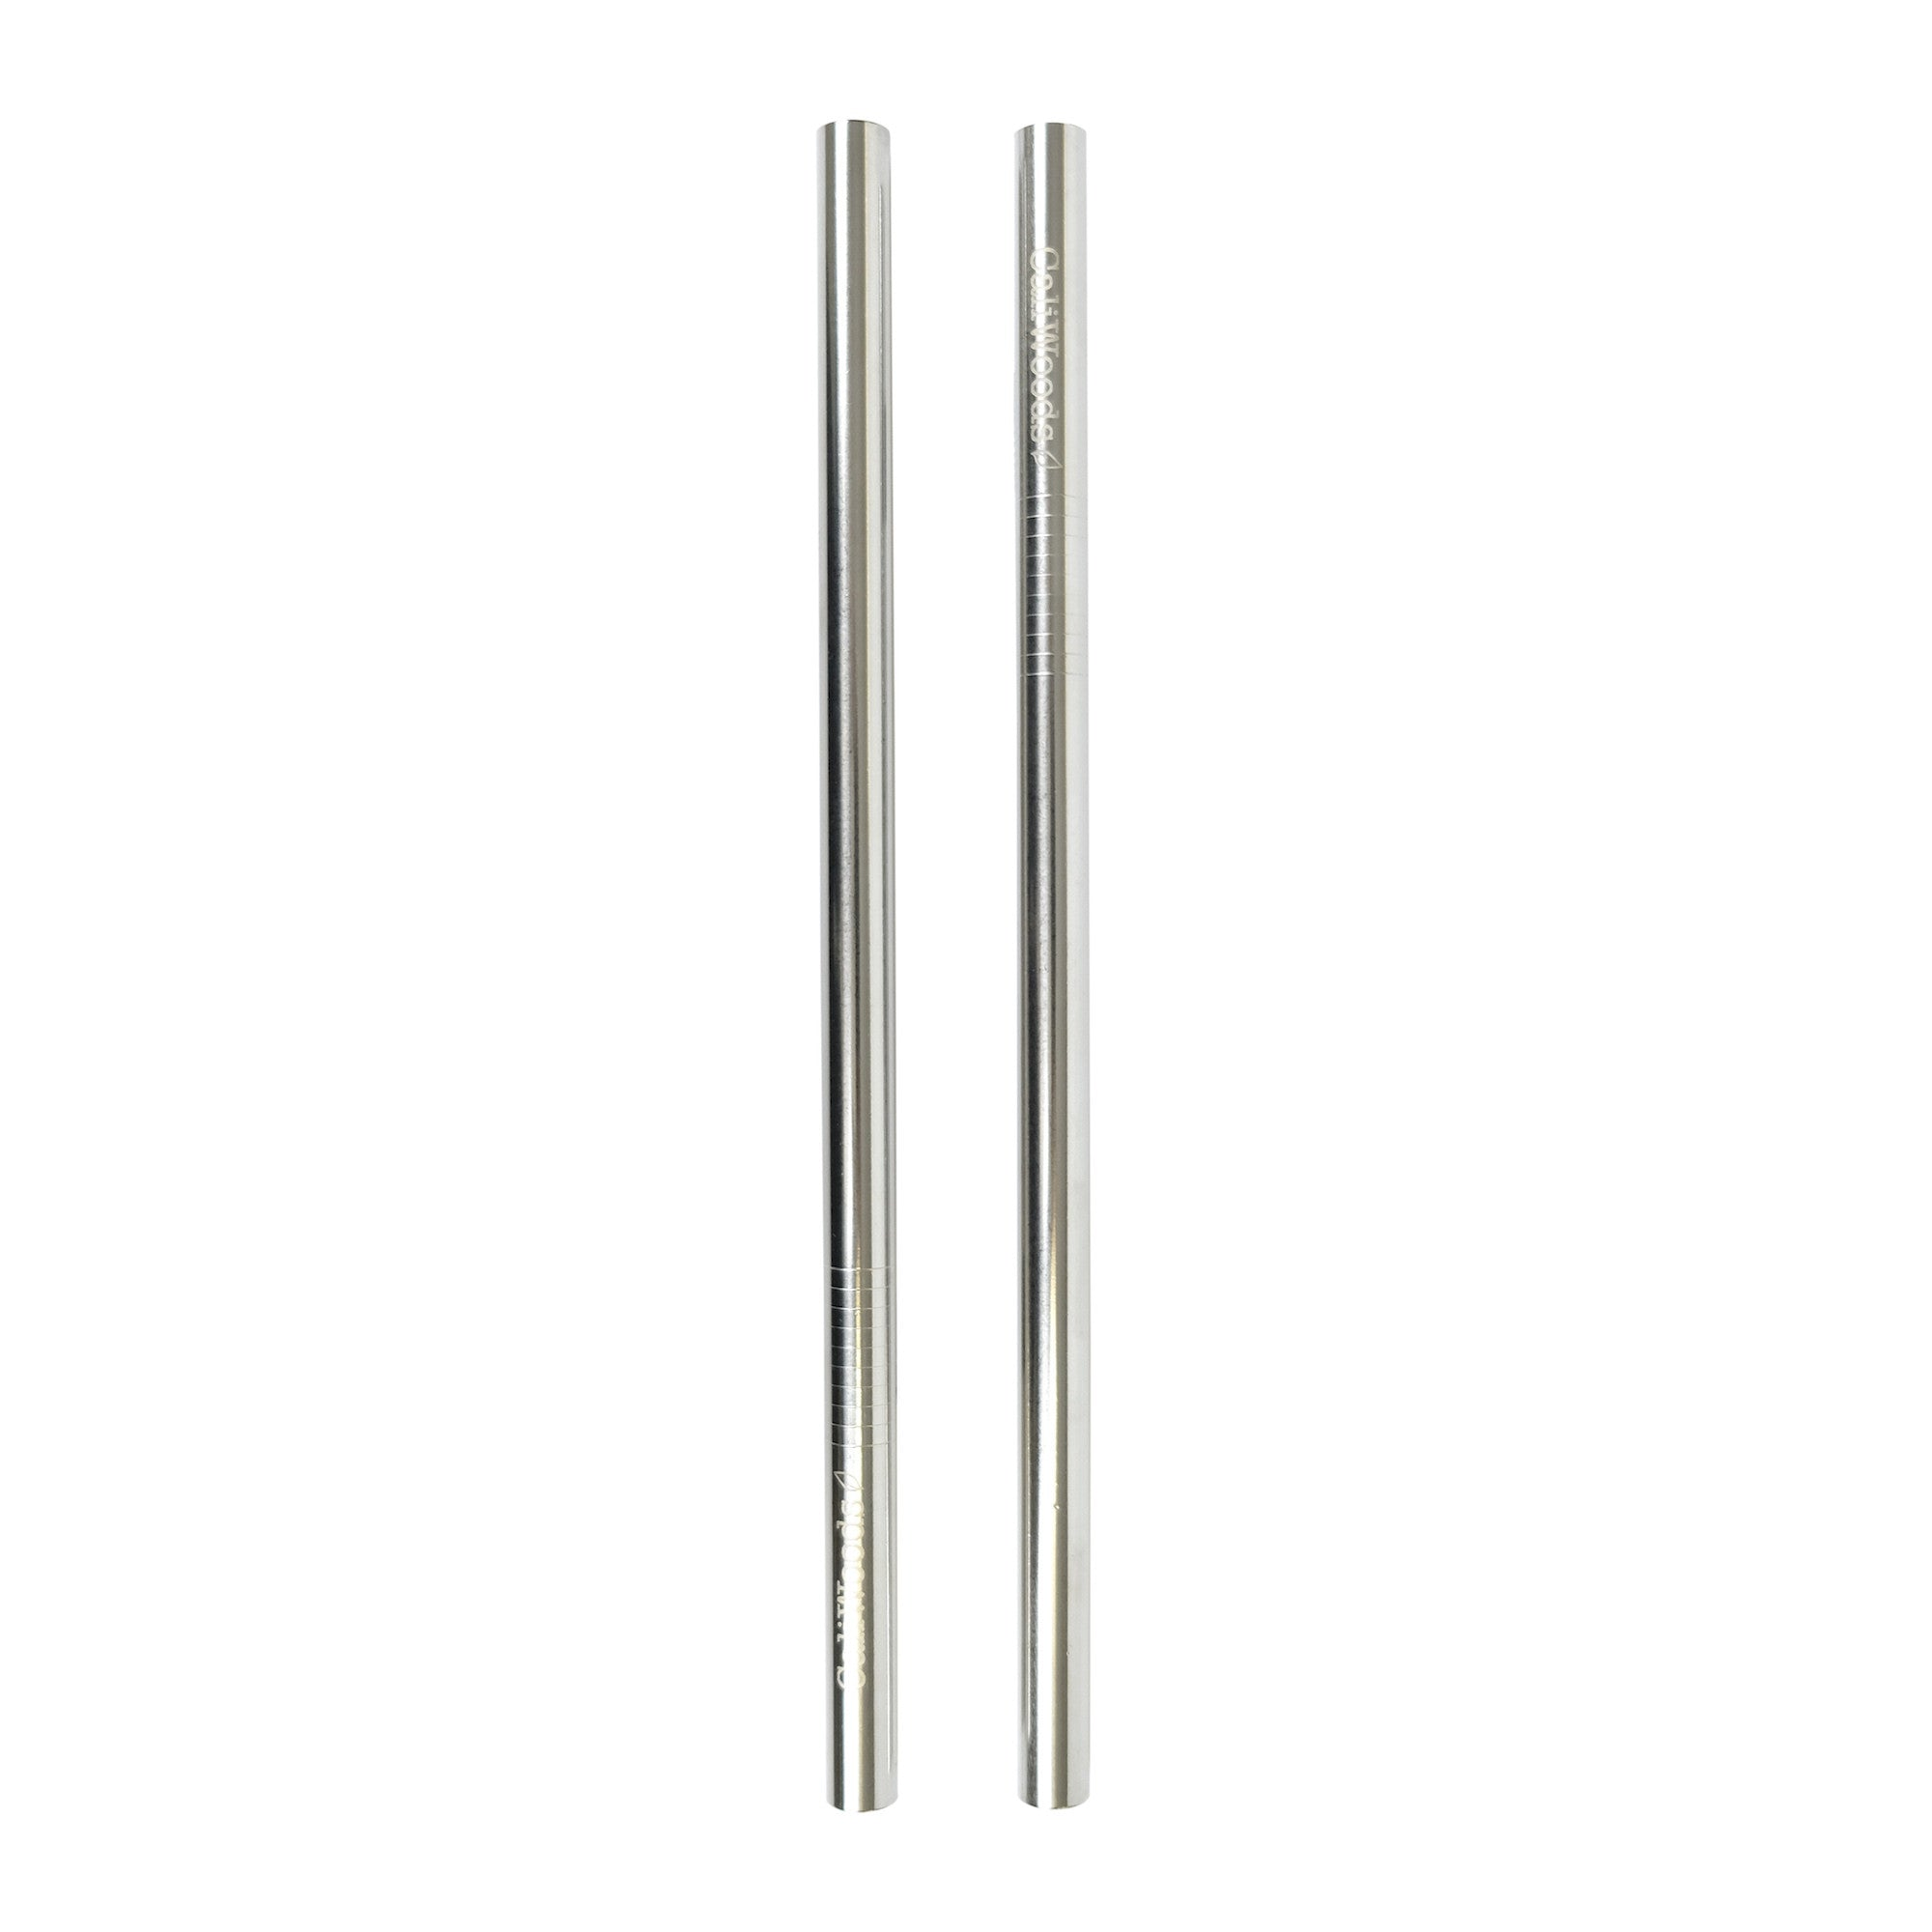 Stainless Steel Drinking Straw - Smoothie - Caliwoods - NZ